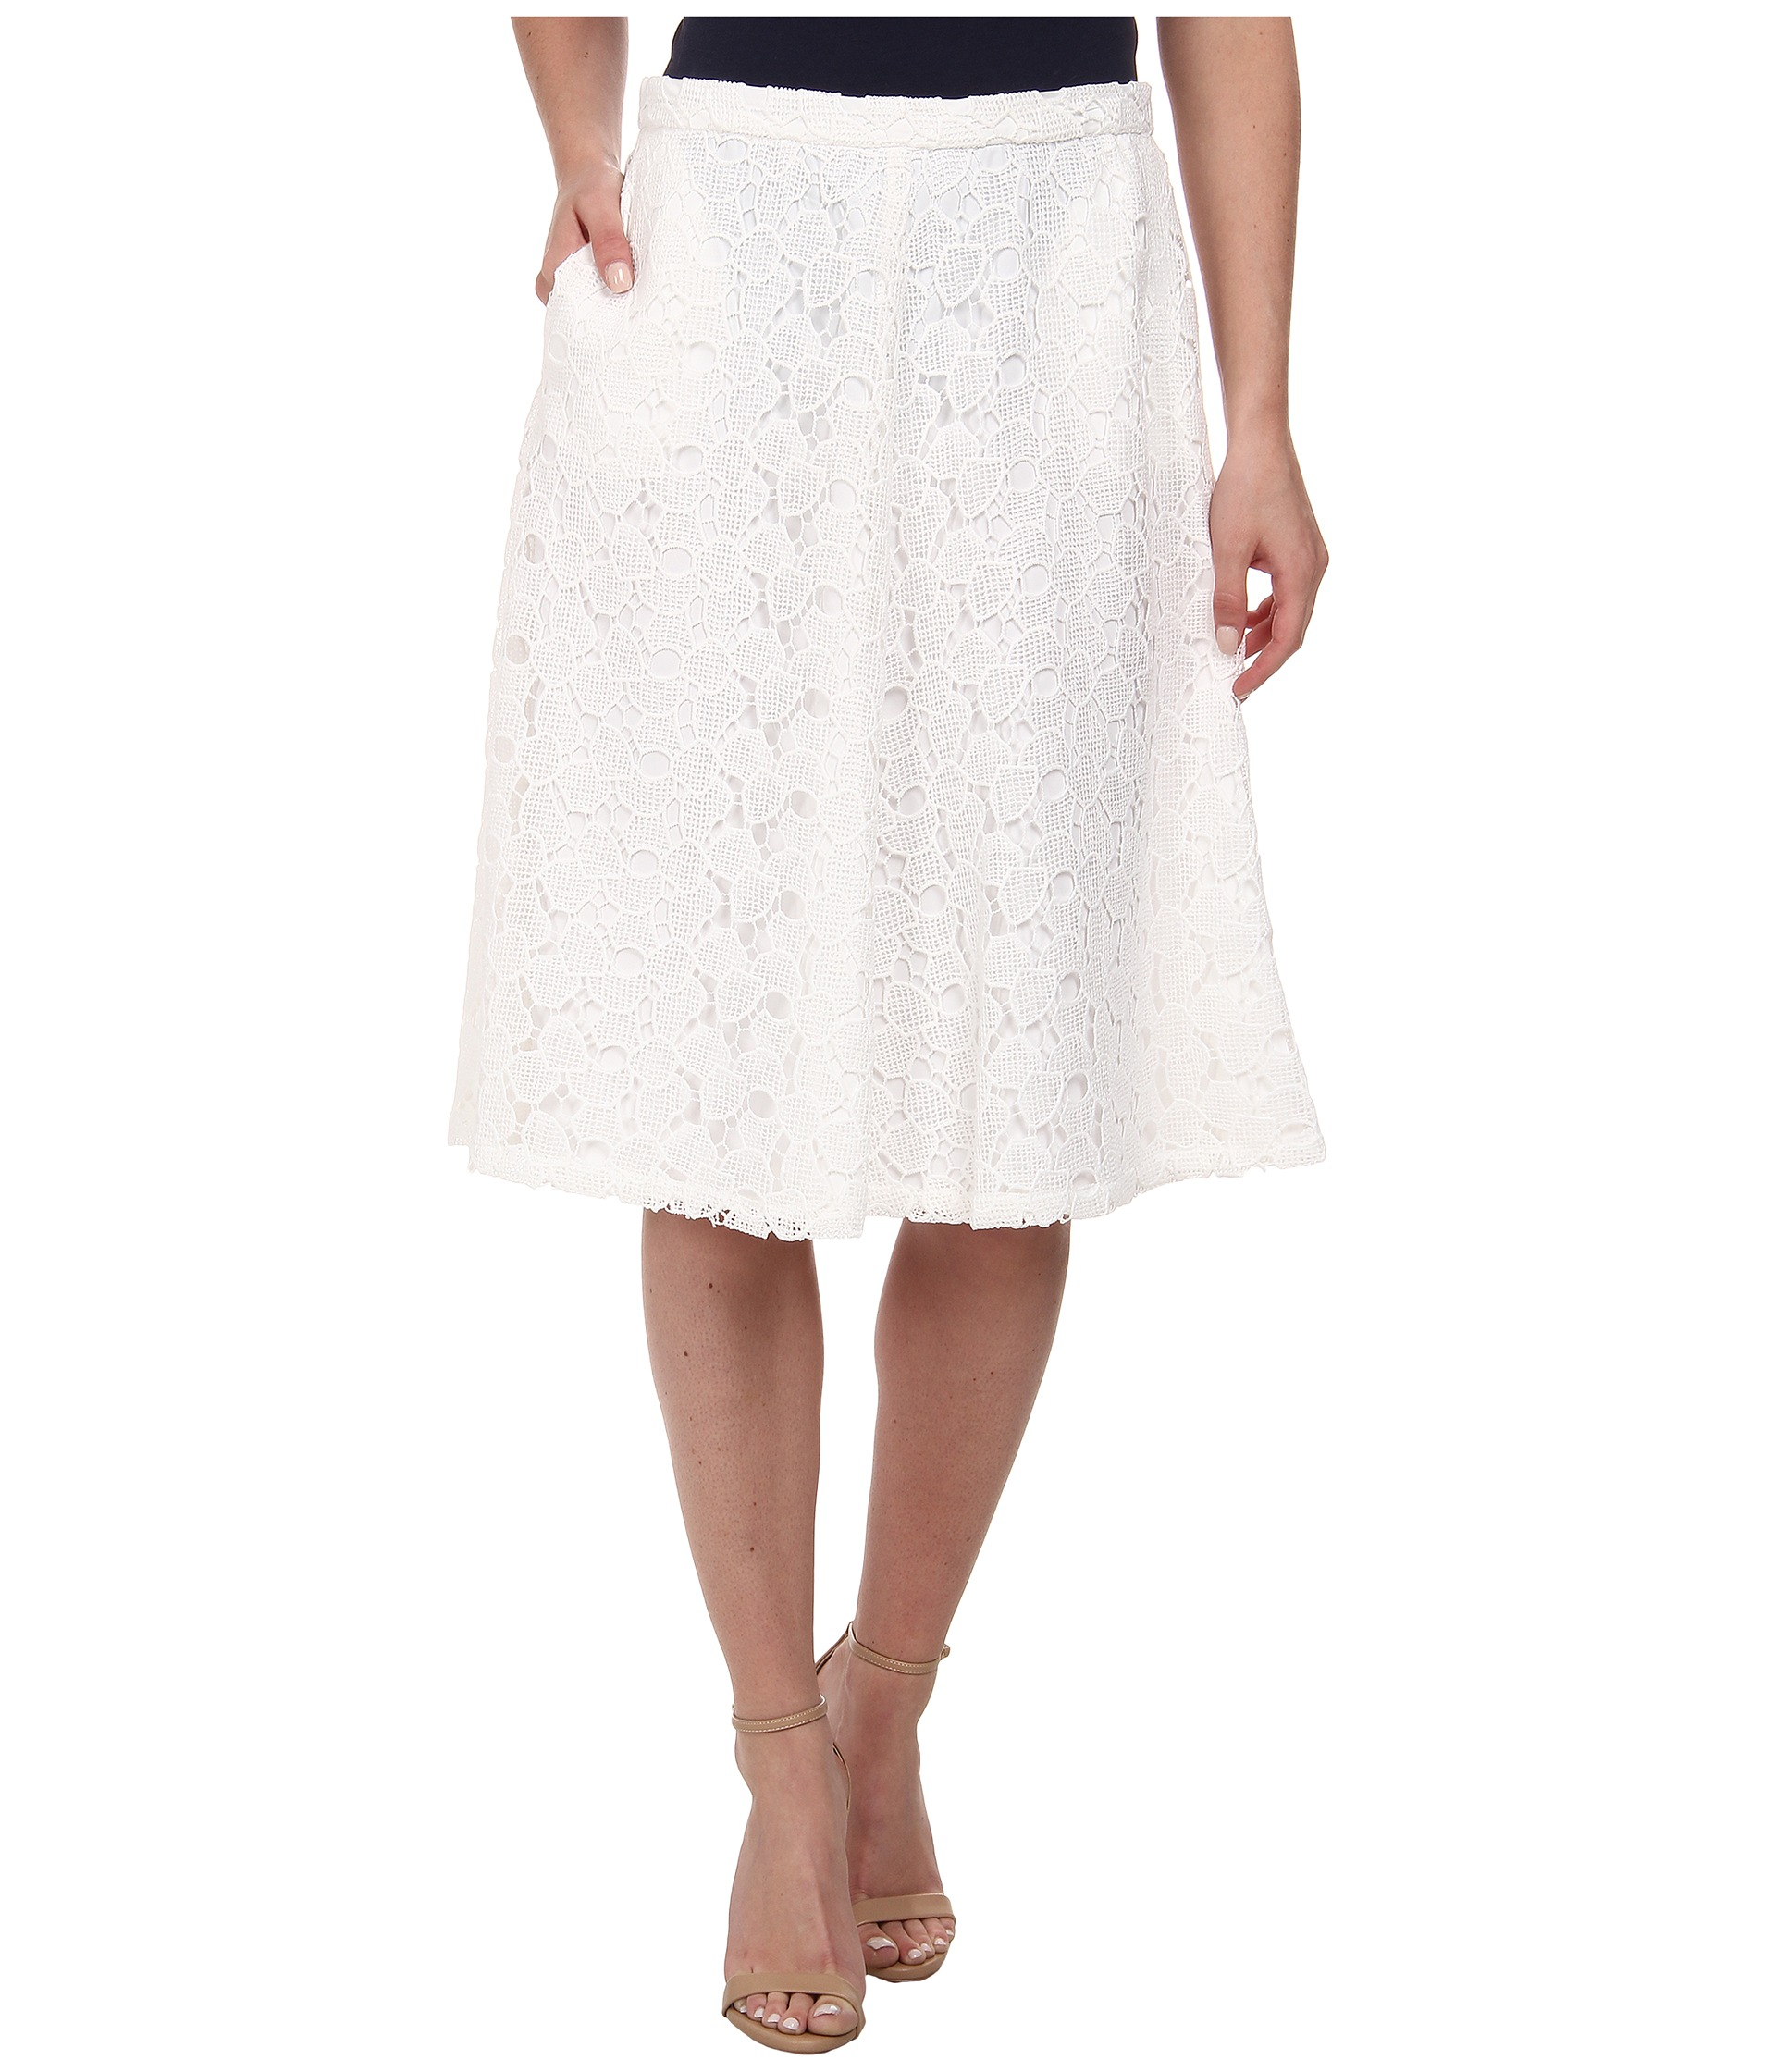 9ace232be5 Calvin Klein Lace Midi Skirt in White - Lyst